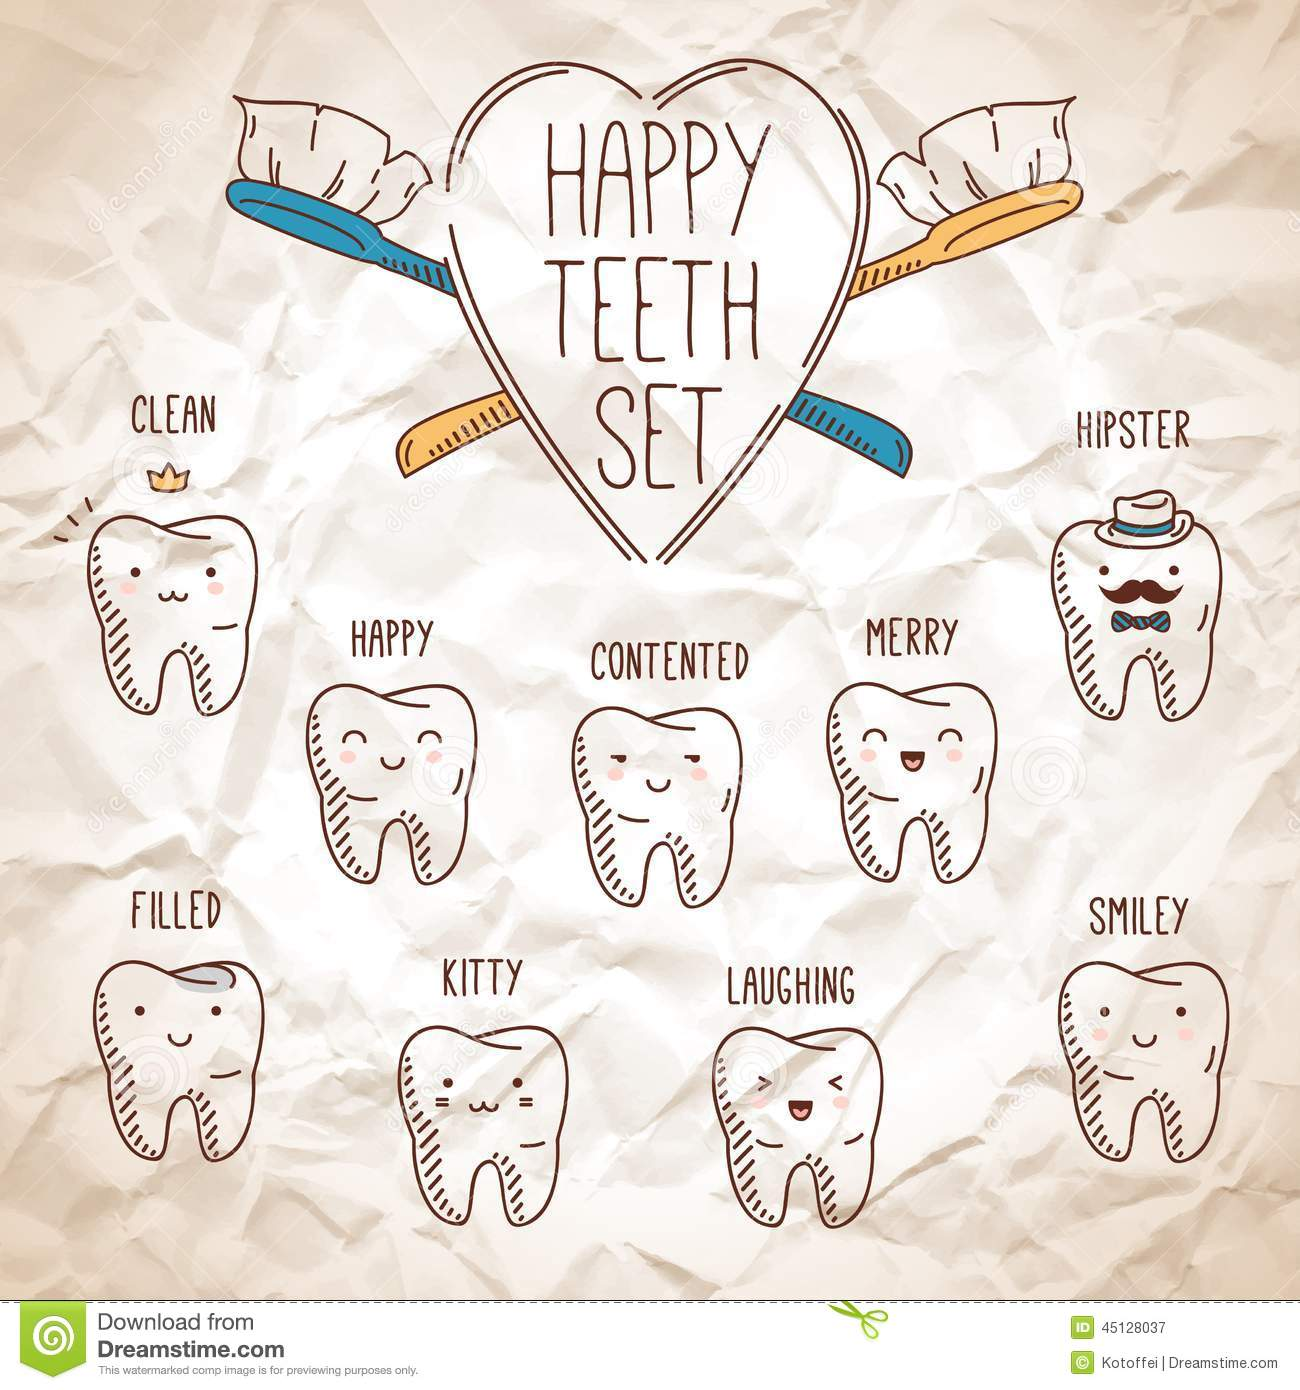 Dentist Quotes Happy Teeth Setdental Collection For Your Design Stock Vector